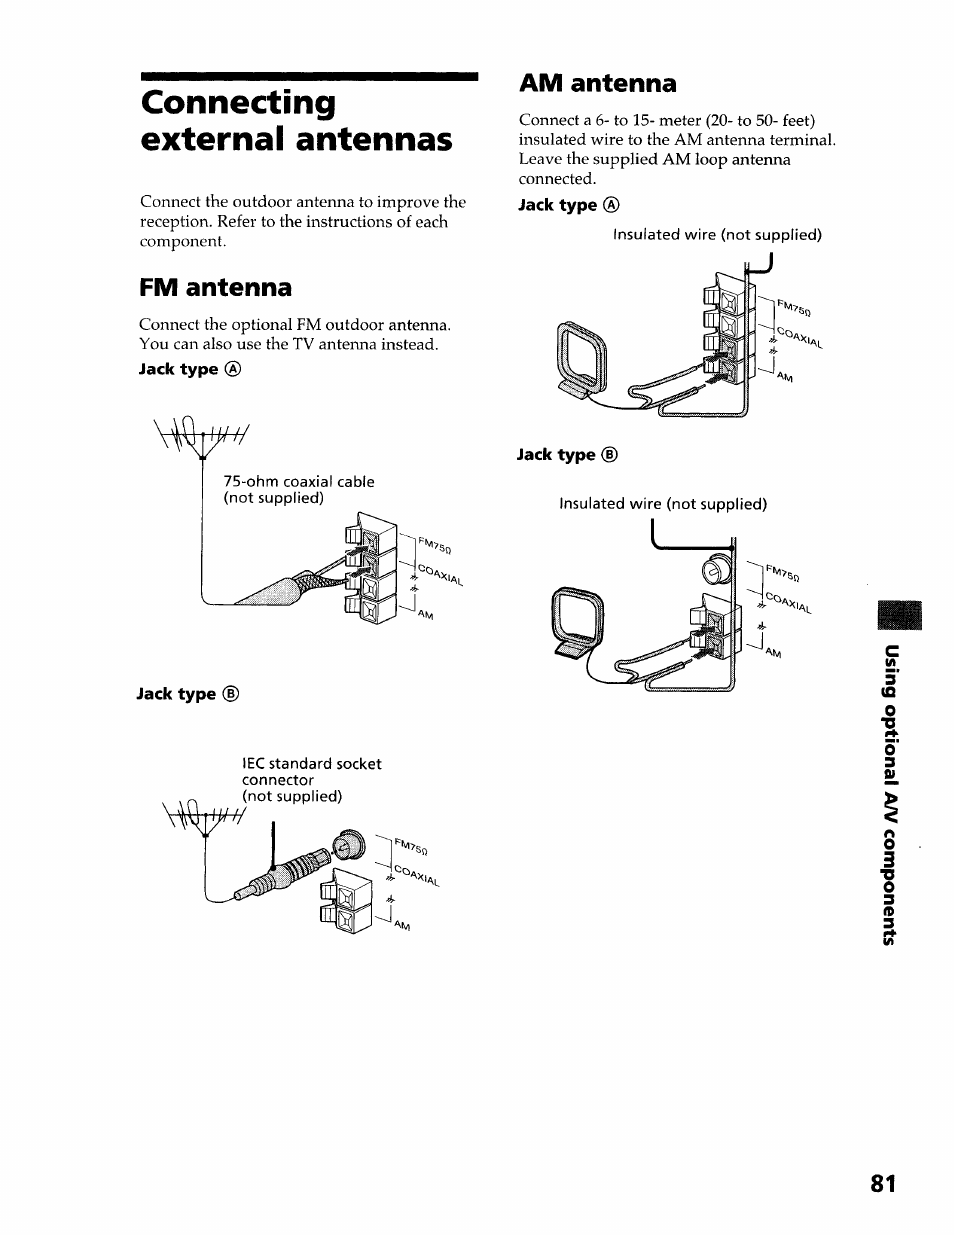 connecting external antennas, fm antenna, jack type sony dhc mdx10 Aftermarket Power Antenna Wiring Diagram